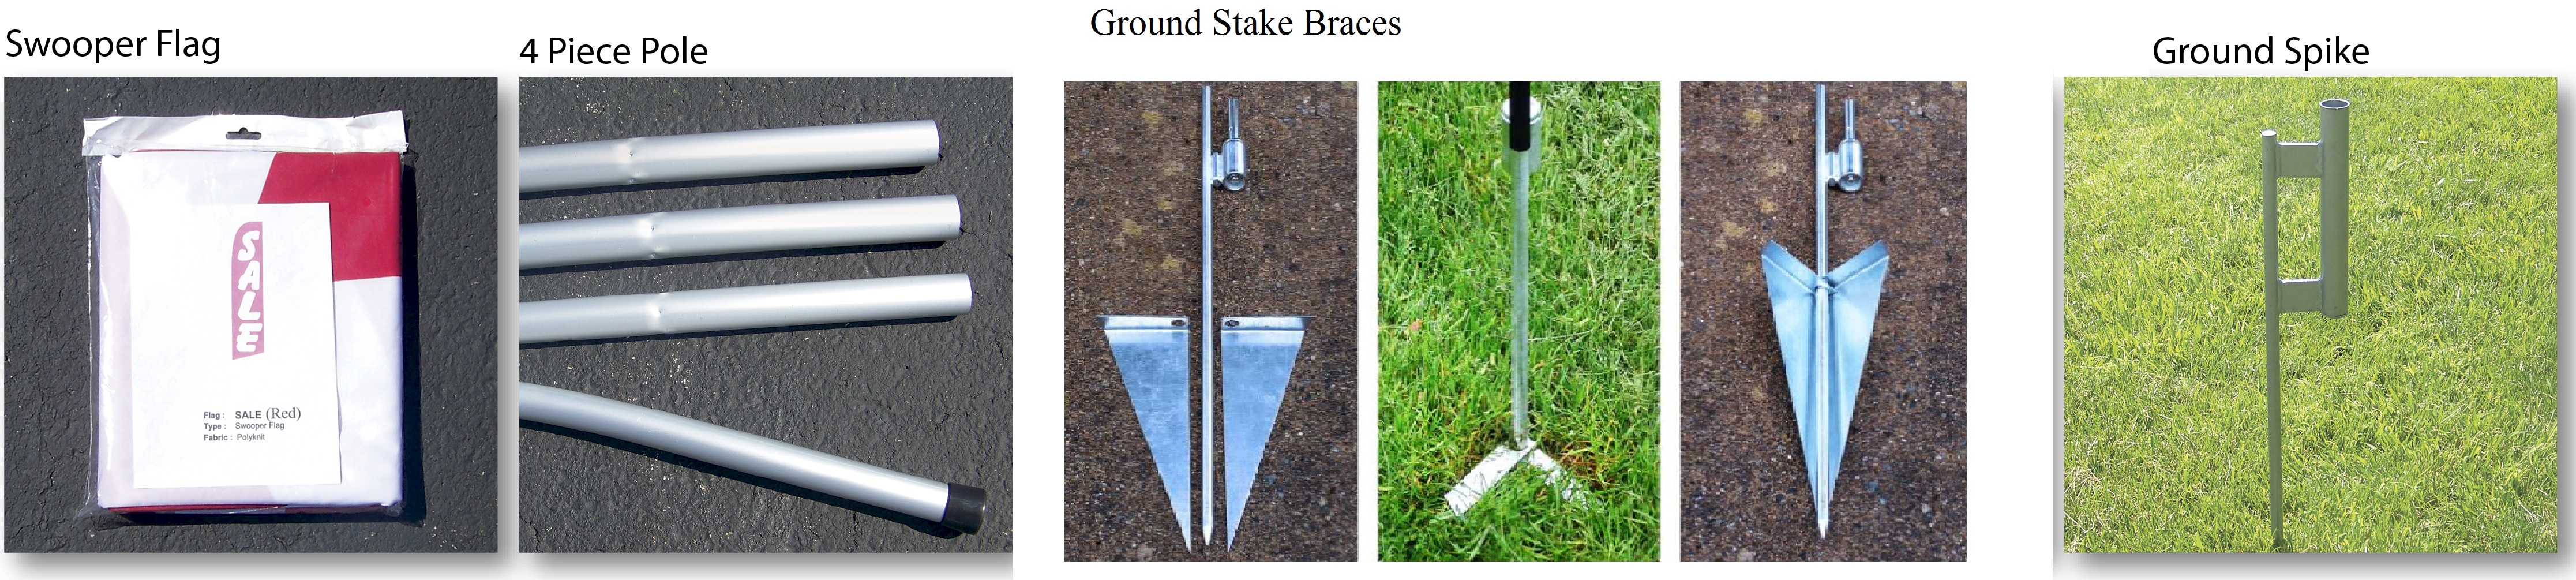 SWOOPER FLAG KIT W/ GROUND STAKE BRACES